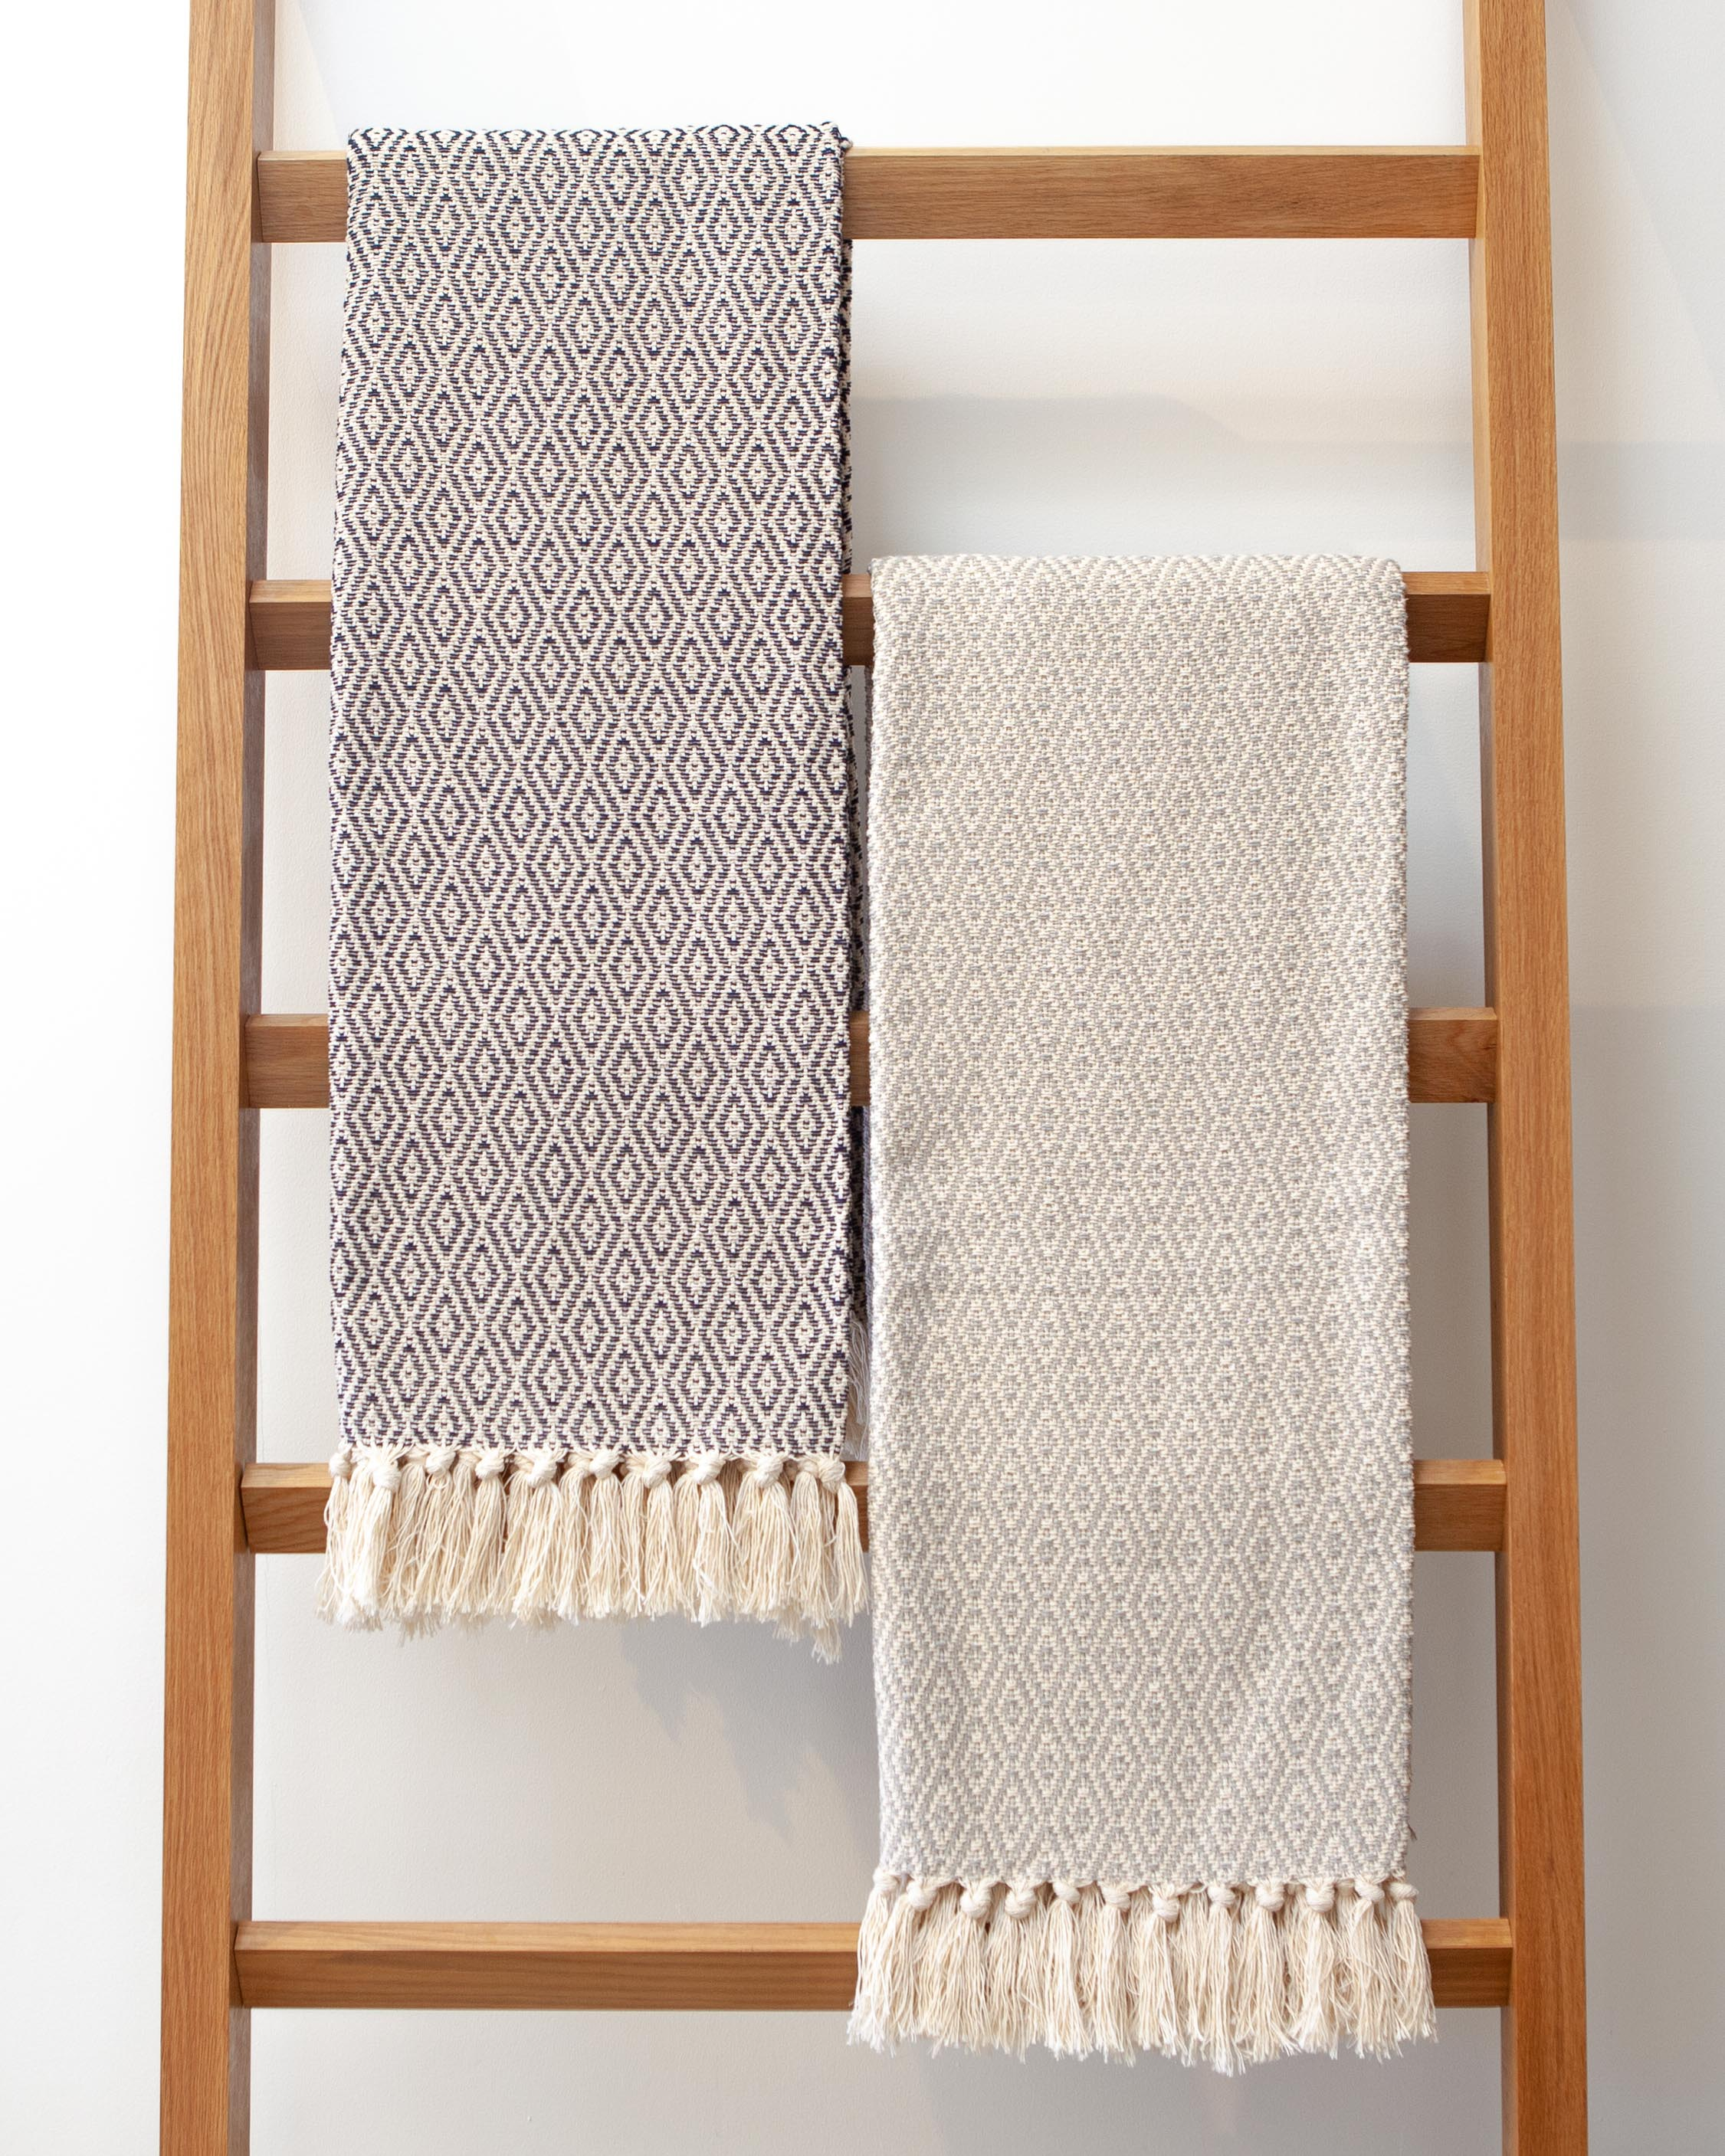 Casa Cubista Throw - Grey & Natural Fringed